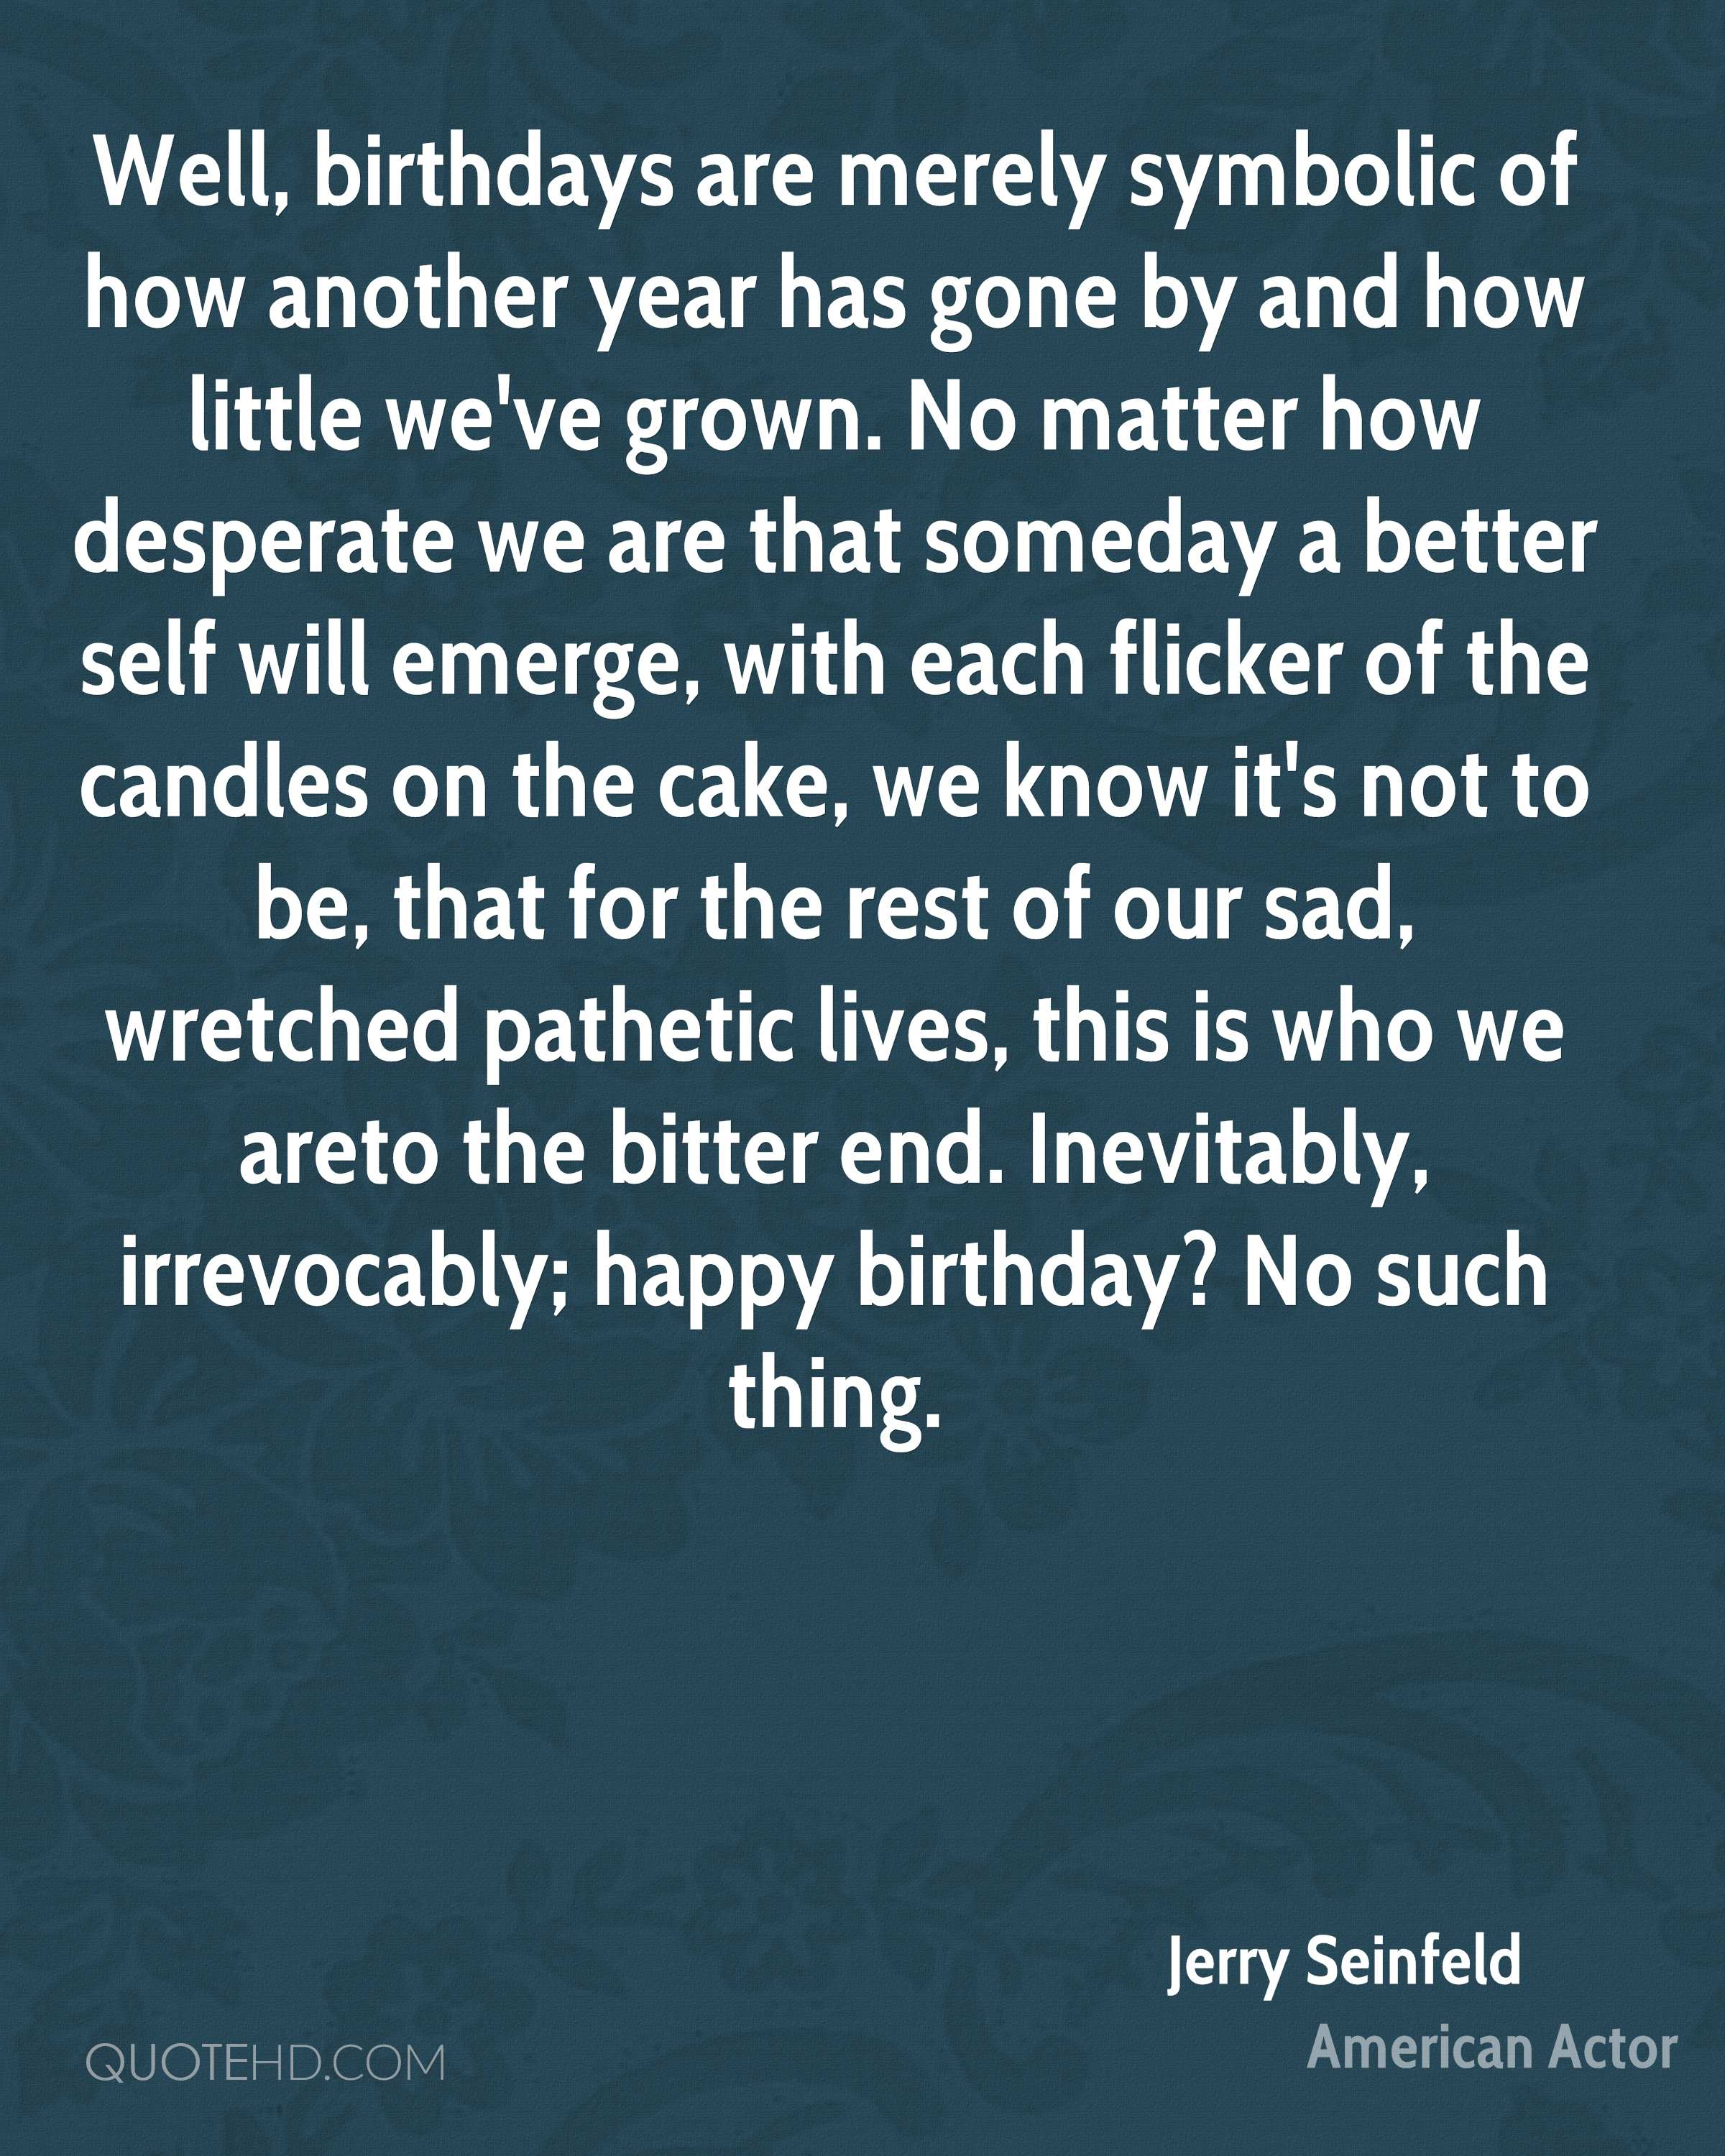 seinfeld birthday quote ; jerry-seinfeld-quote-well-birthdays-are-merely-symbolic-of-how